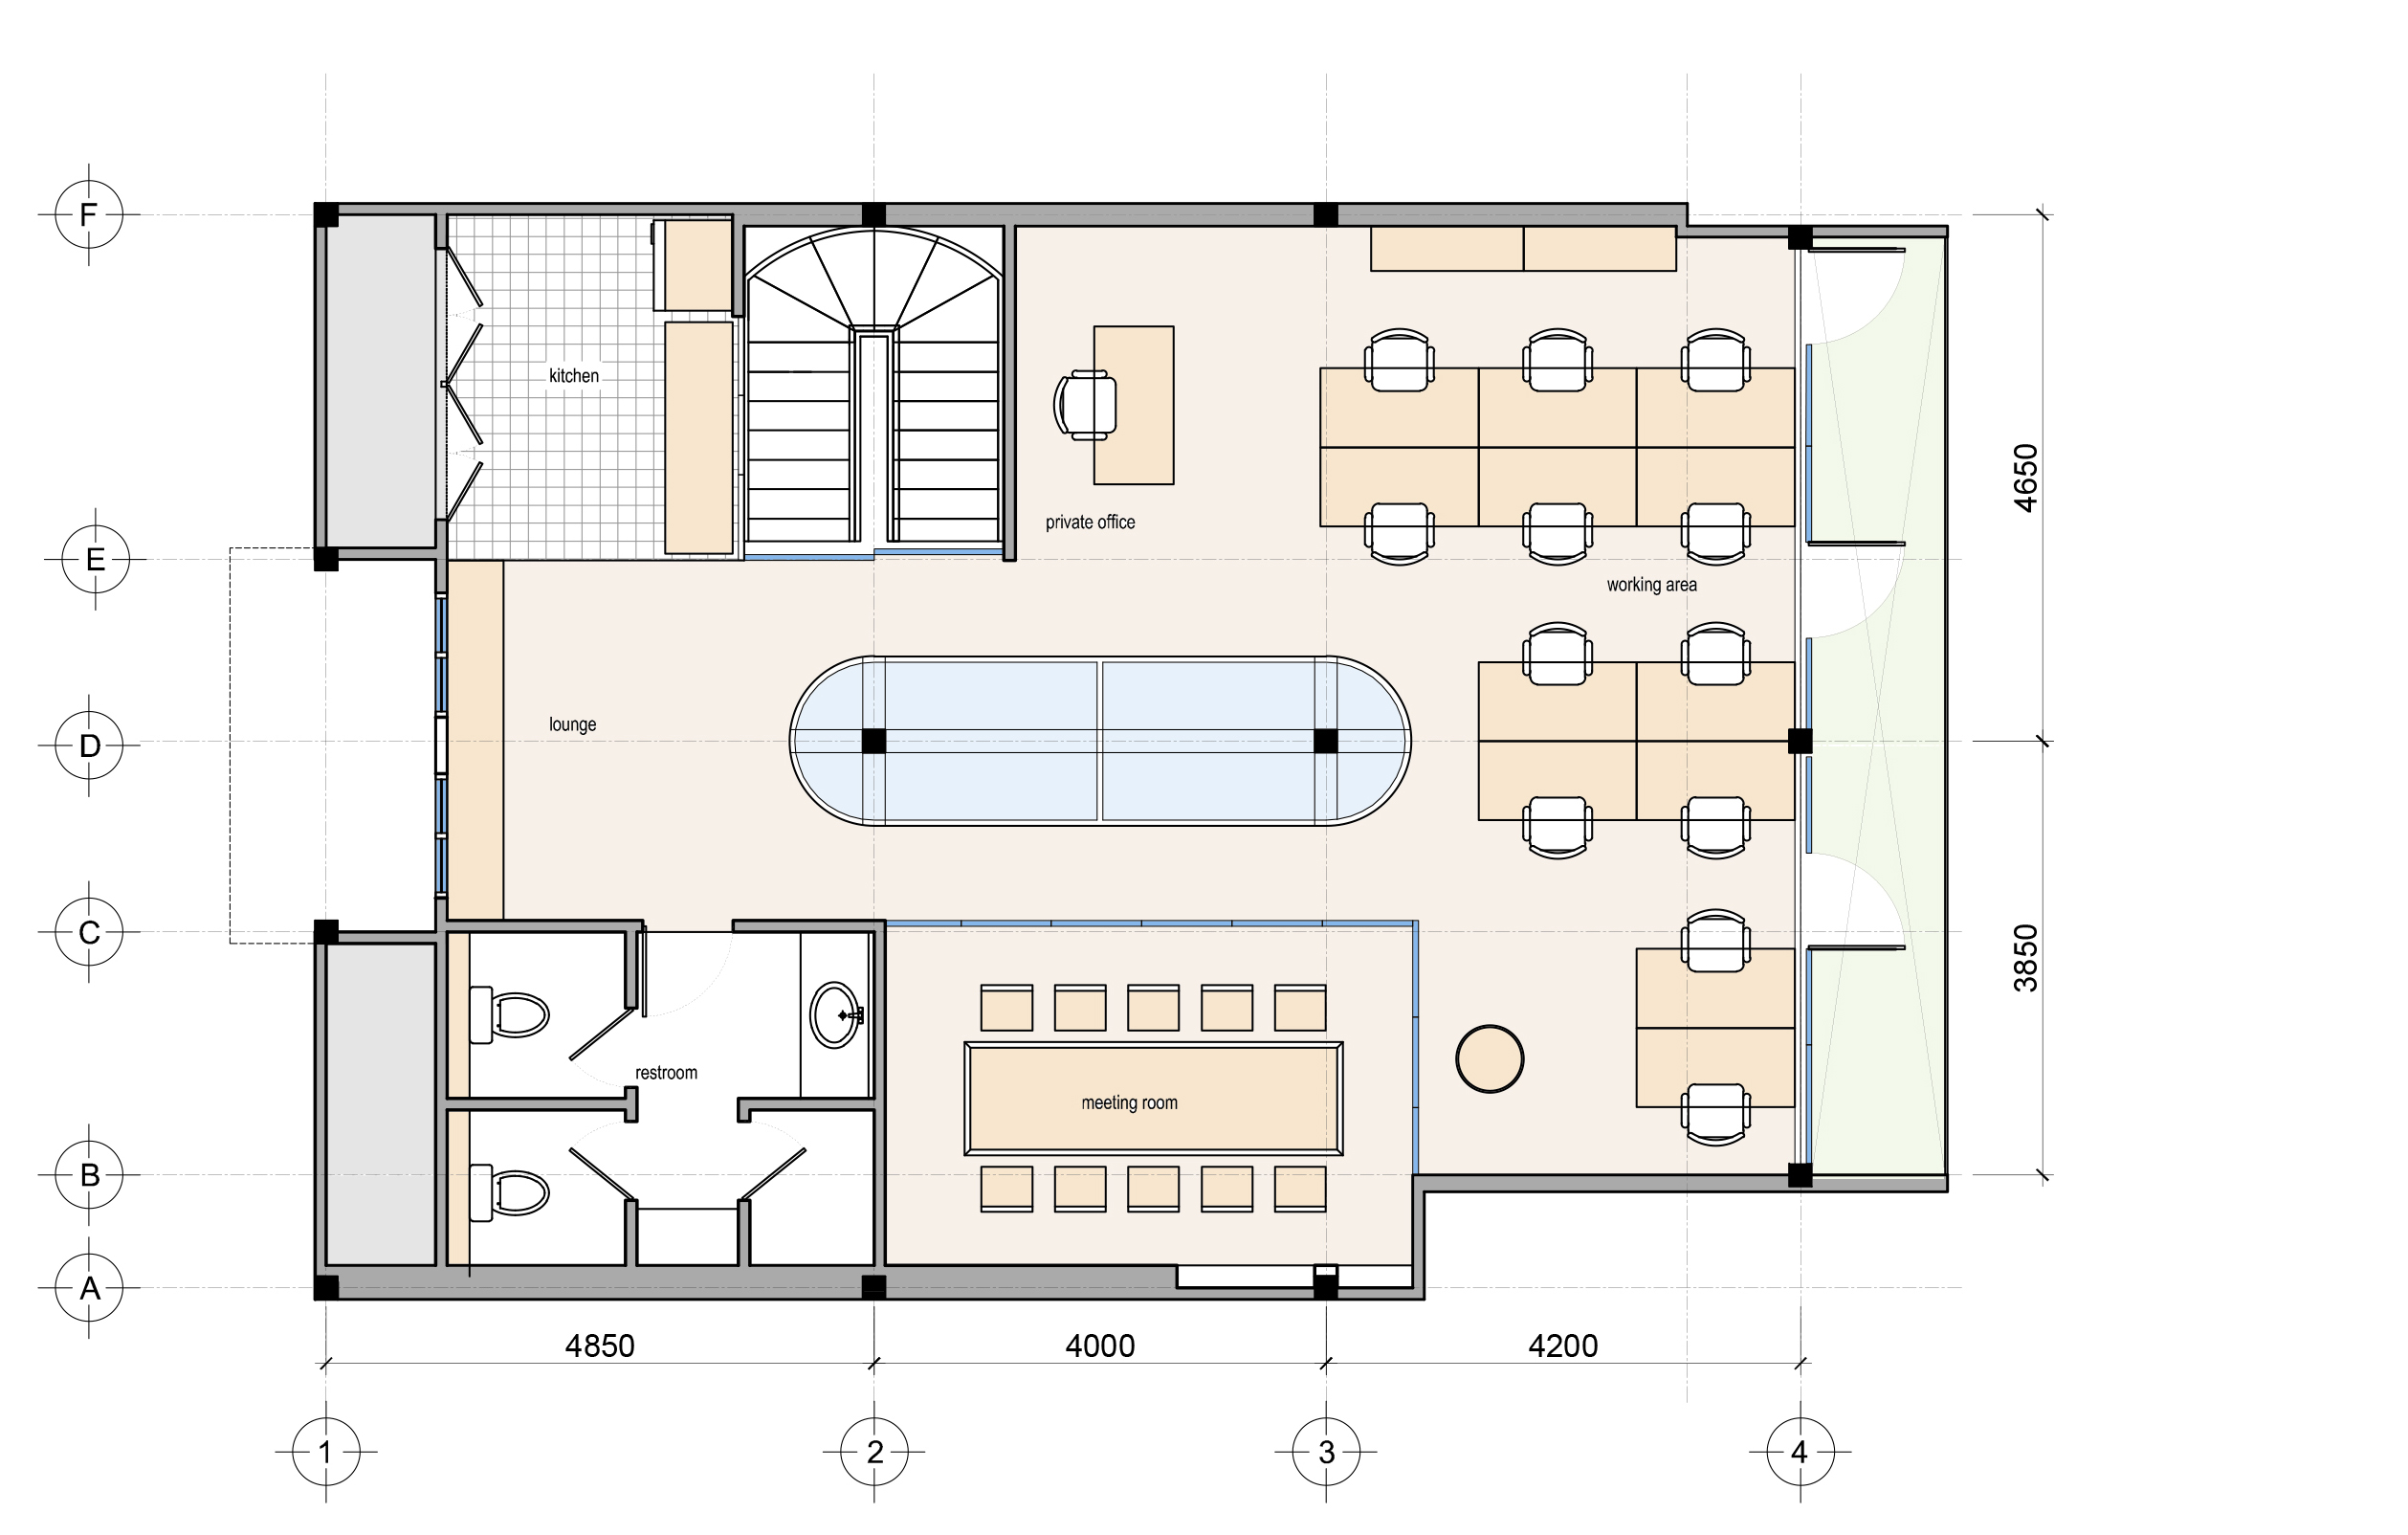 Corecam Family floor plan